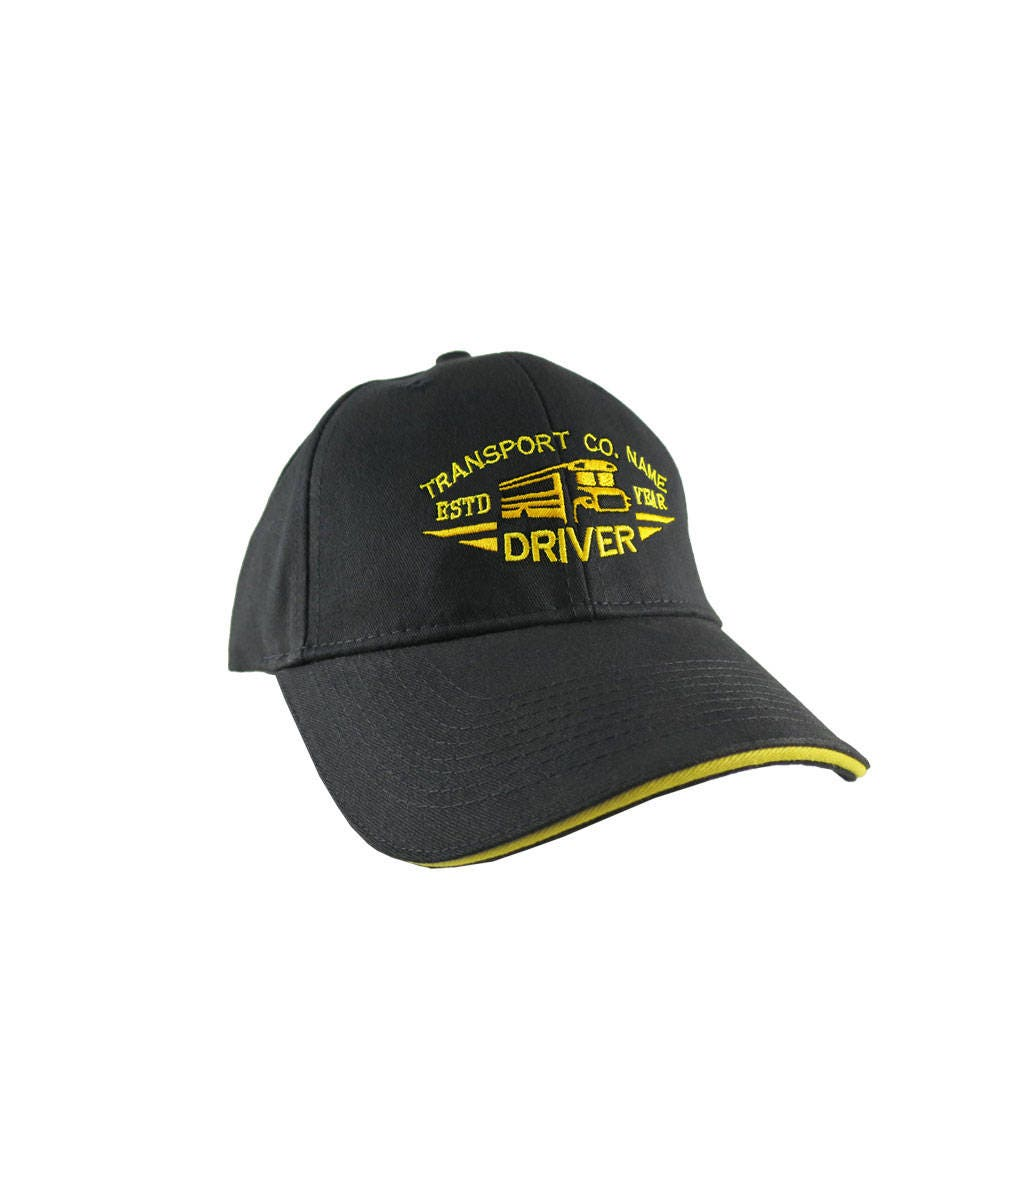 School Bus Embroidery Embroidered Adjustable Hat Baseball Cap